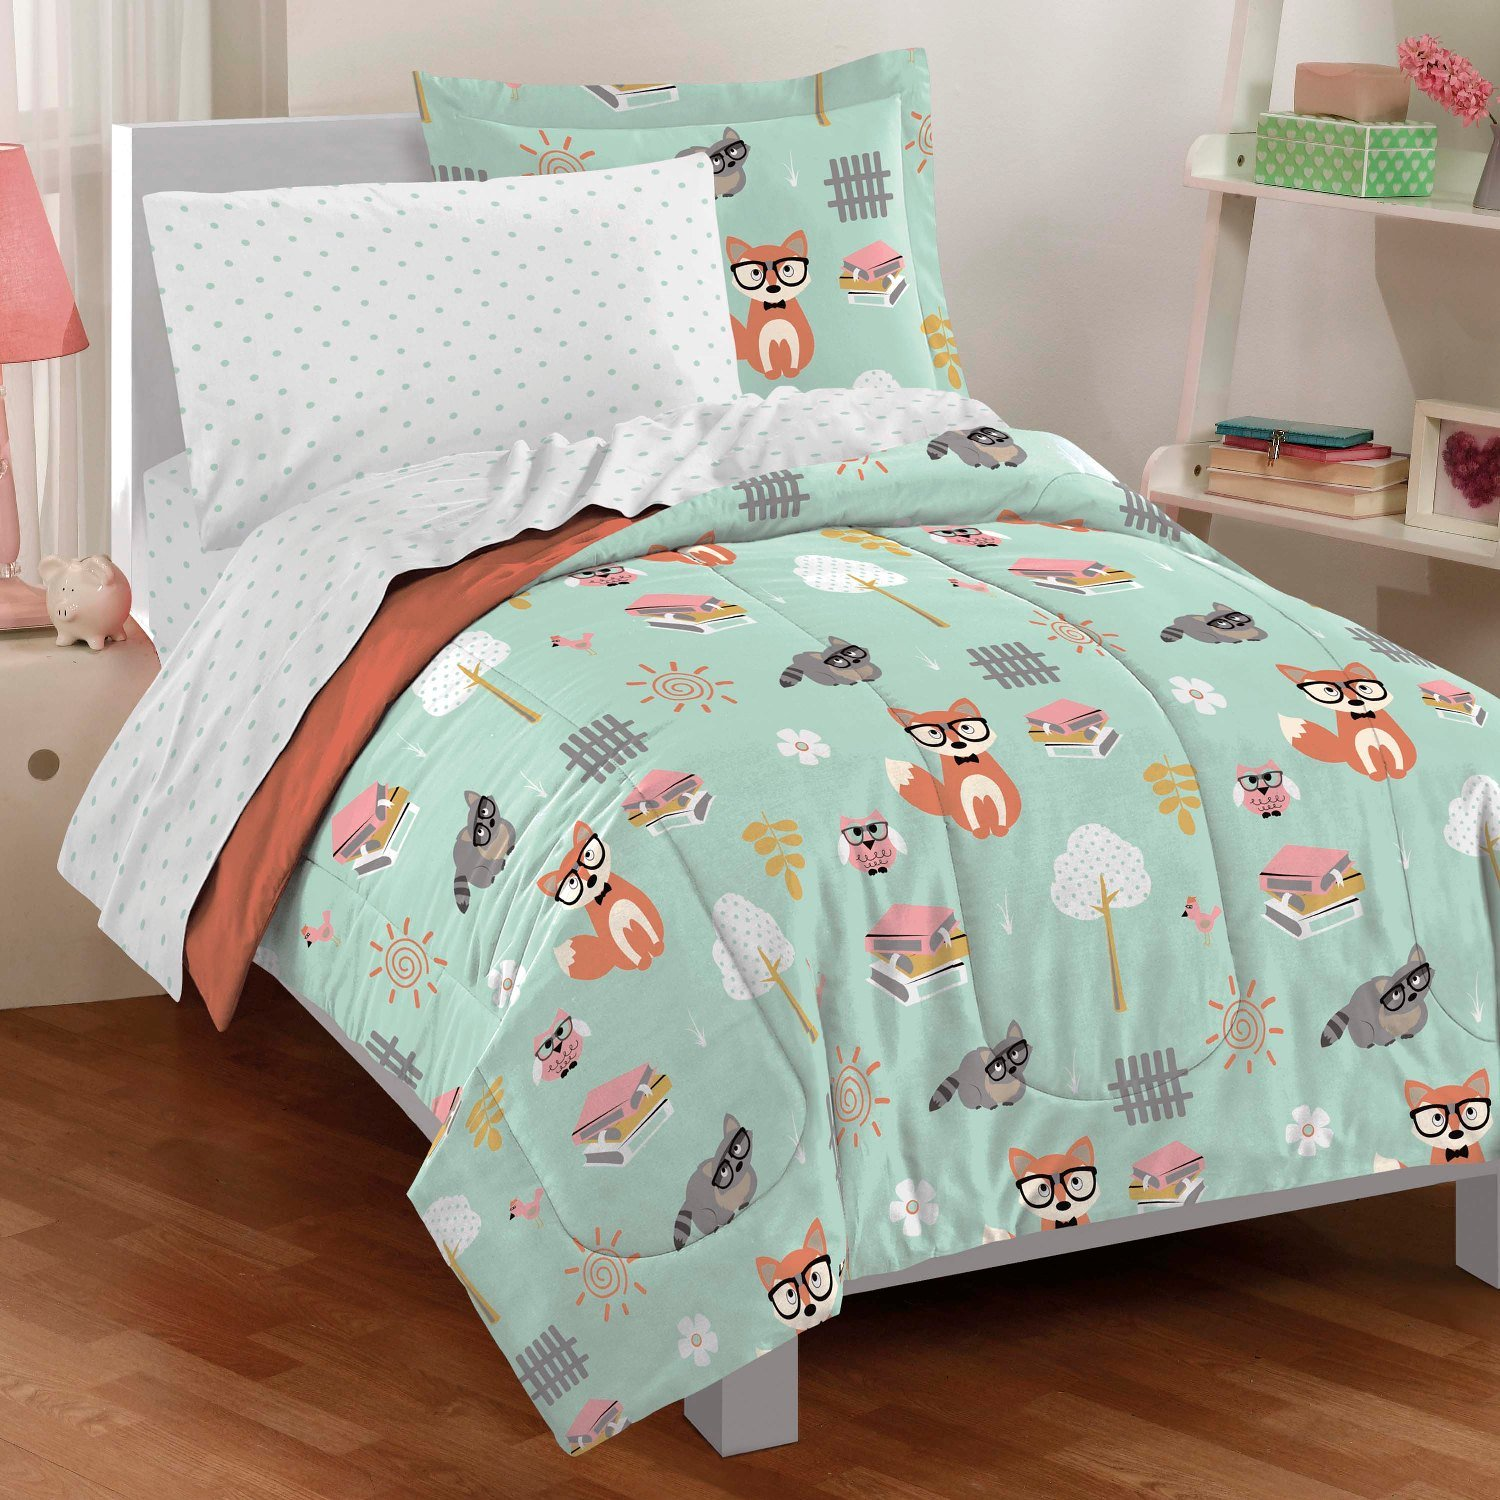 duvet cover unicorn girls toddler exclusive single new stardust set bedding girl itm bed